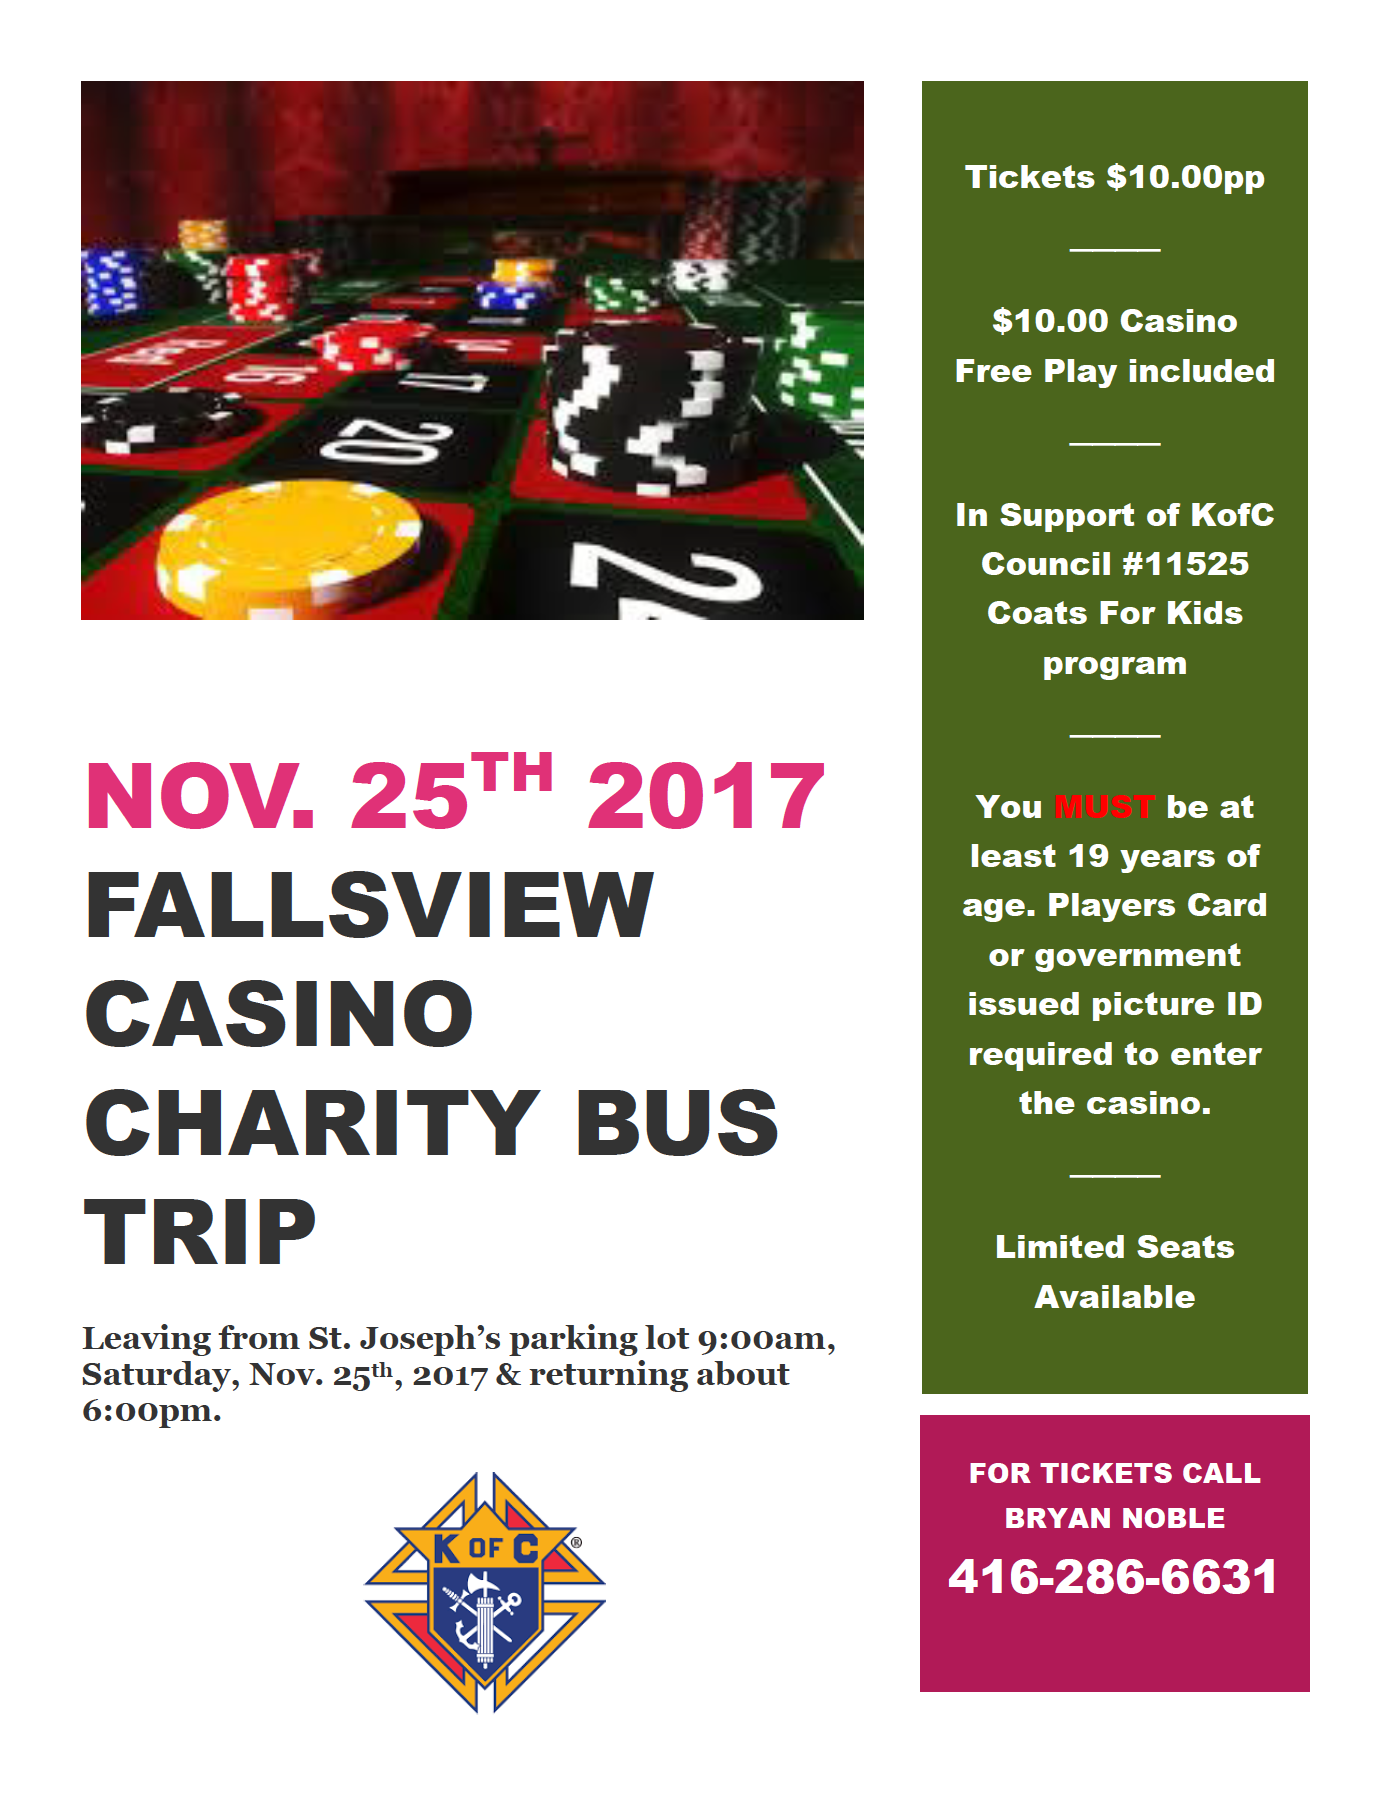 KOC Falls View Casino Charity Bus Trip